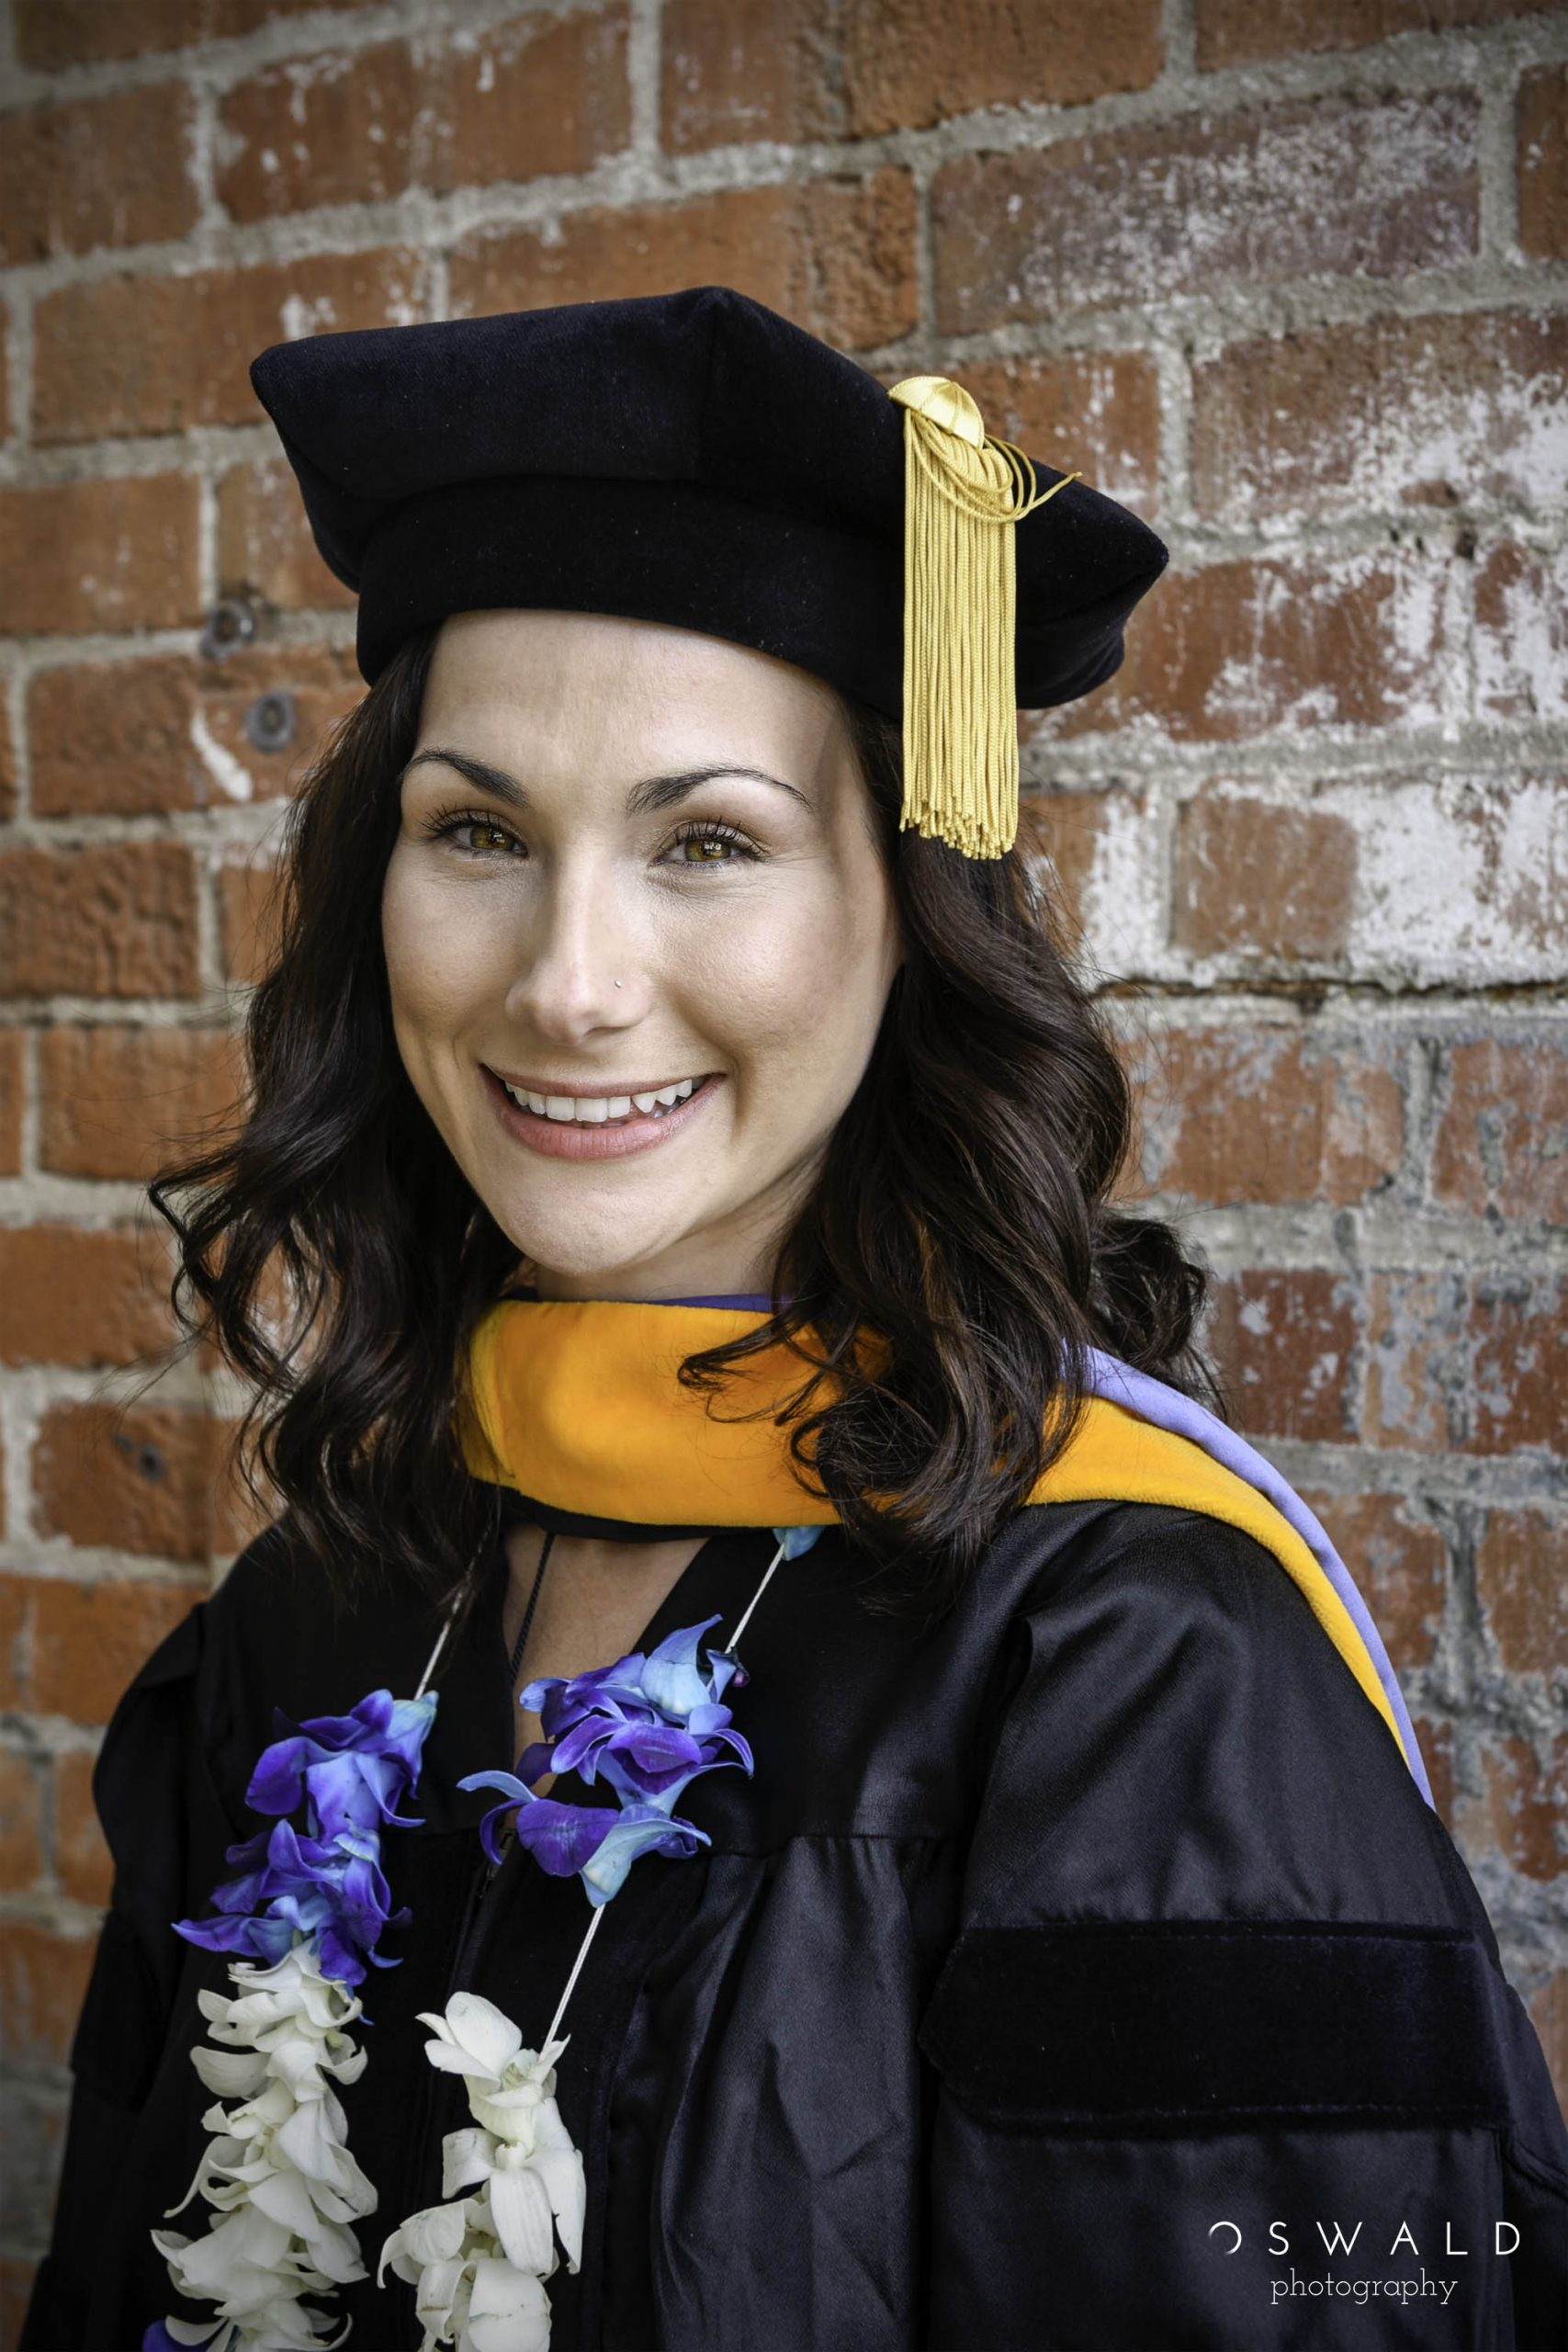 A portrait photograph of a young, caucasian female doctoral graduate on her graduation day wearing a tam o' shanter.